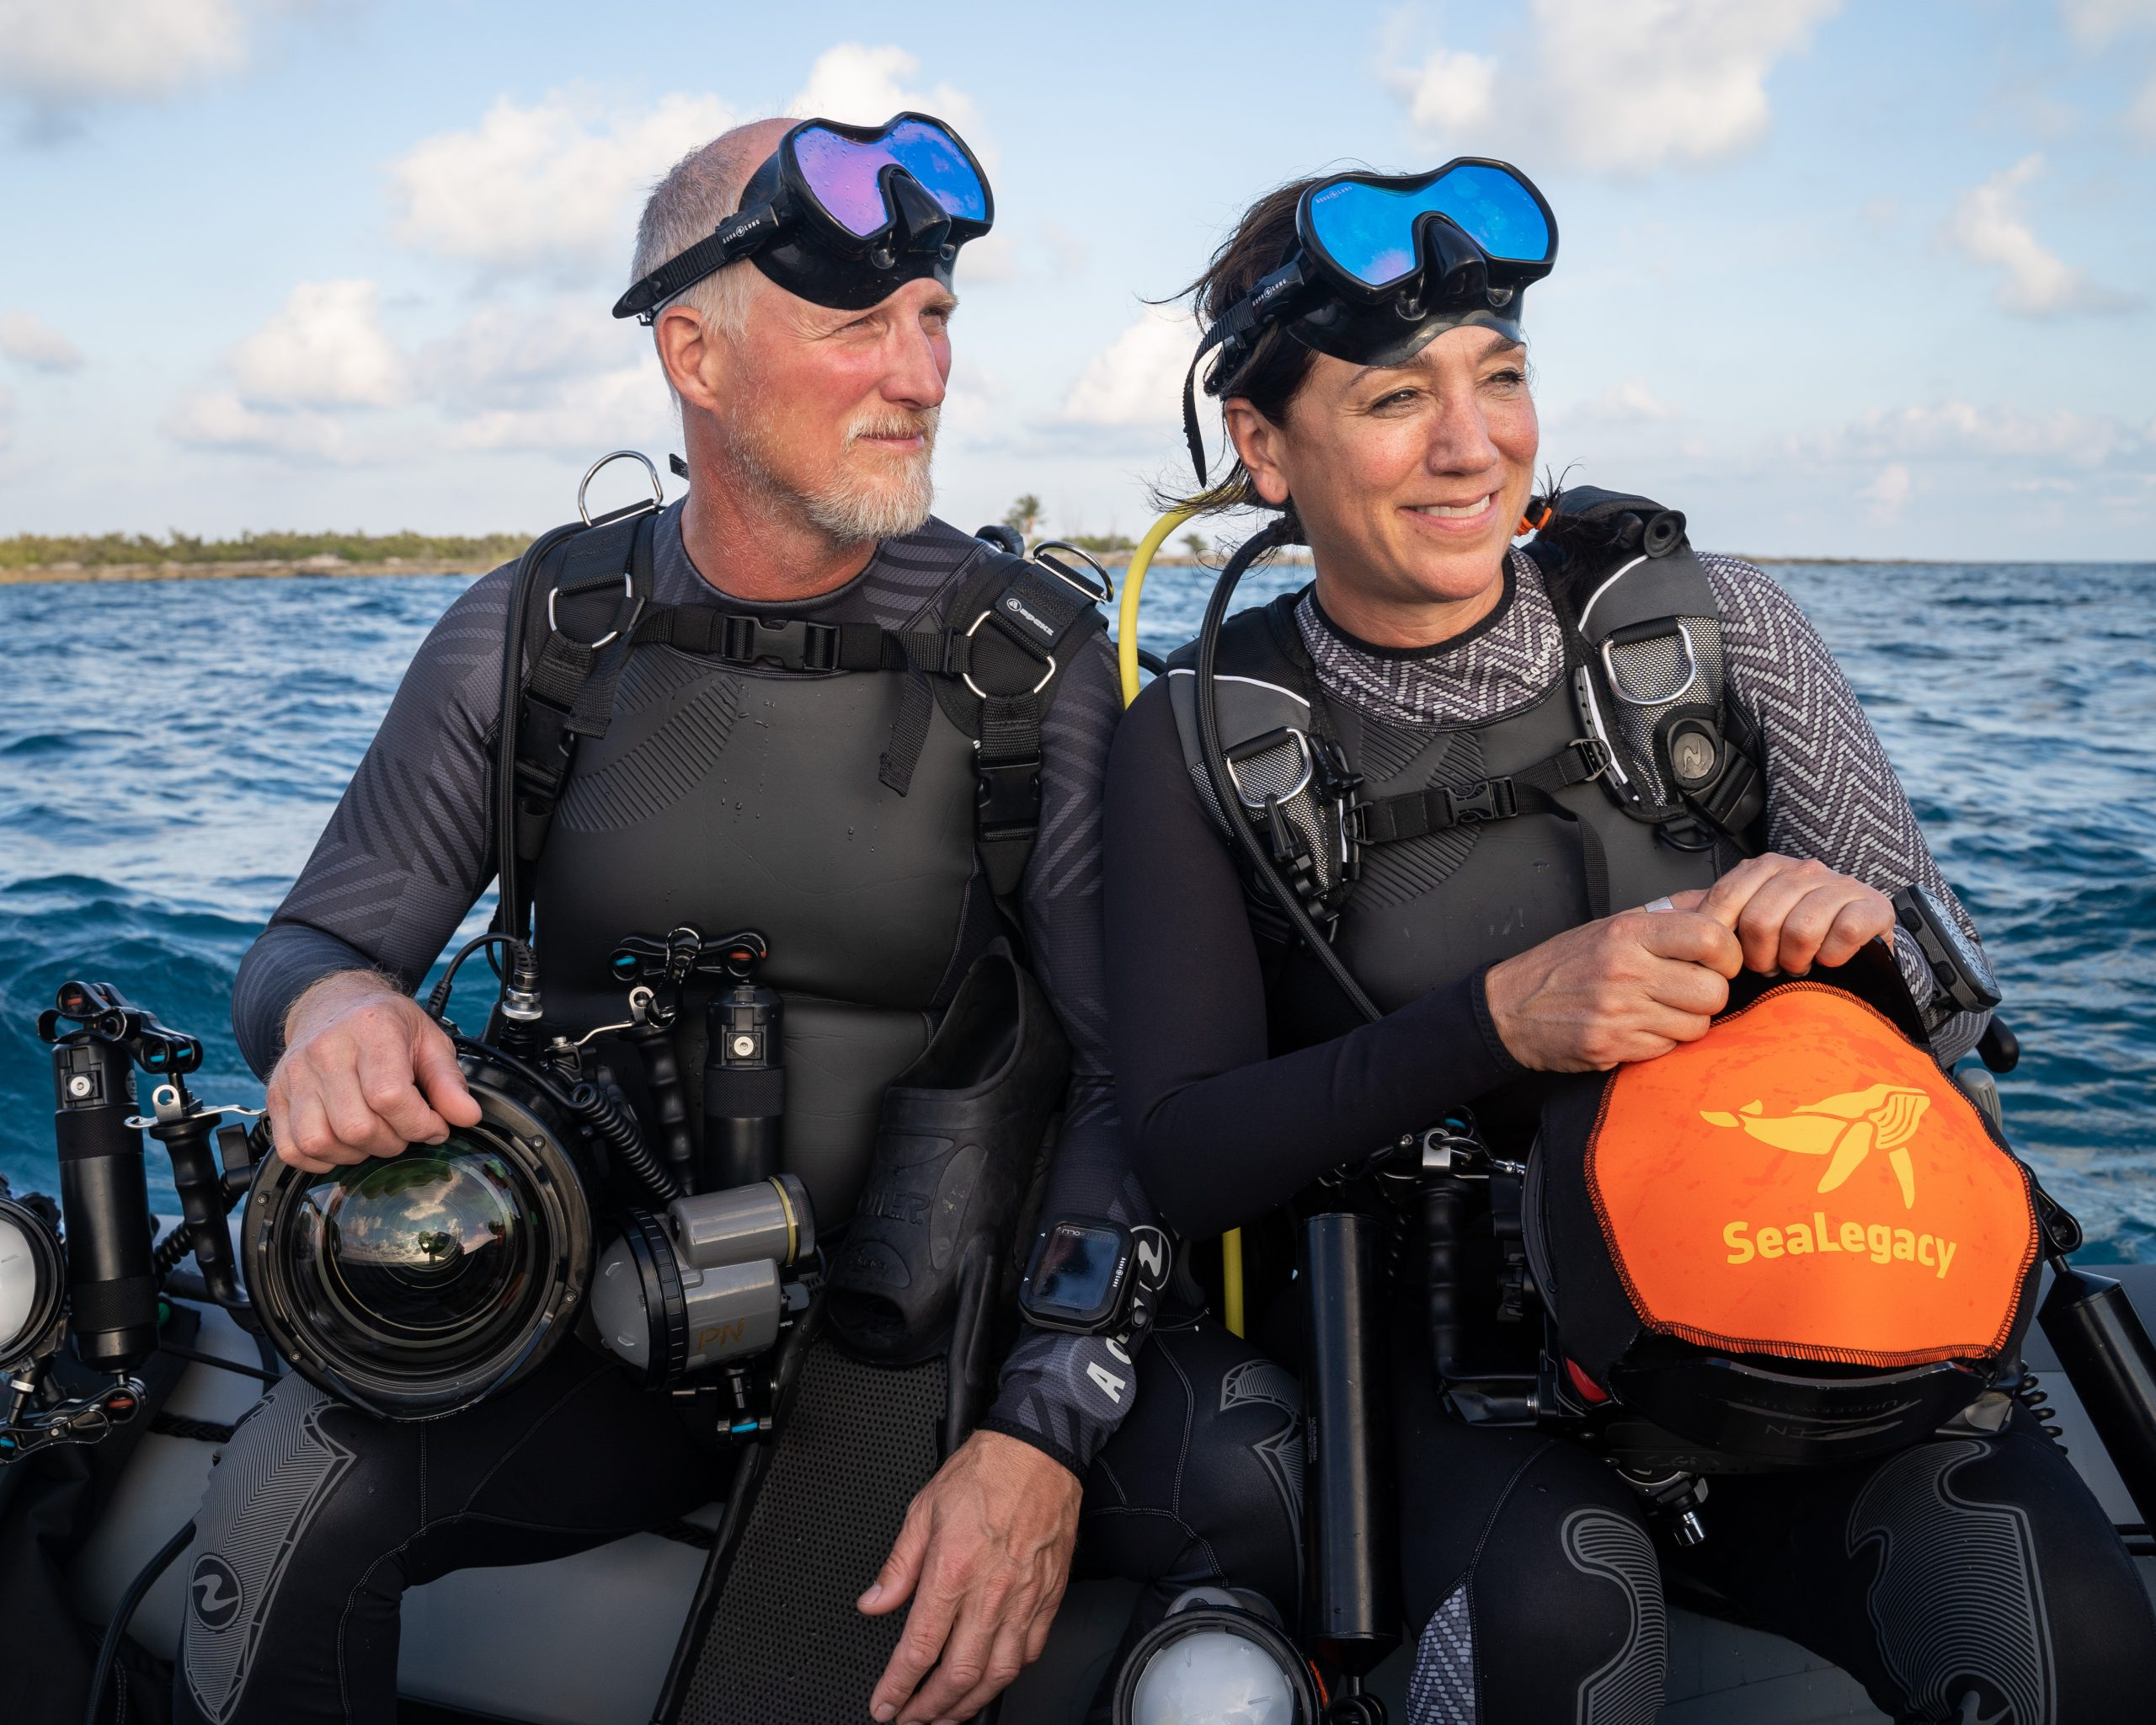 Aqua Lung global ocean ambassador and SeaLegacy co-founder, Paul Nicklen with co-founder and President of SeaLegacy, Cristina Mittermeier. Photo credit: Joe Leahy